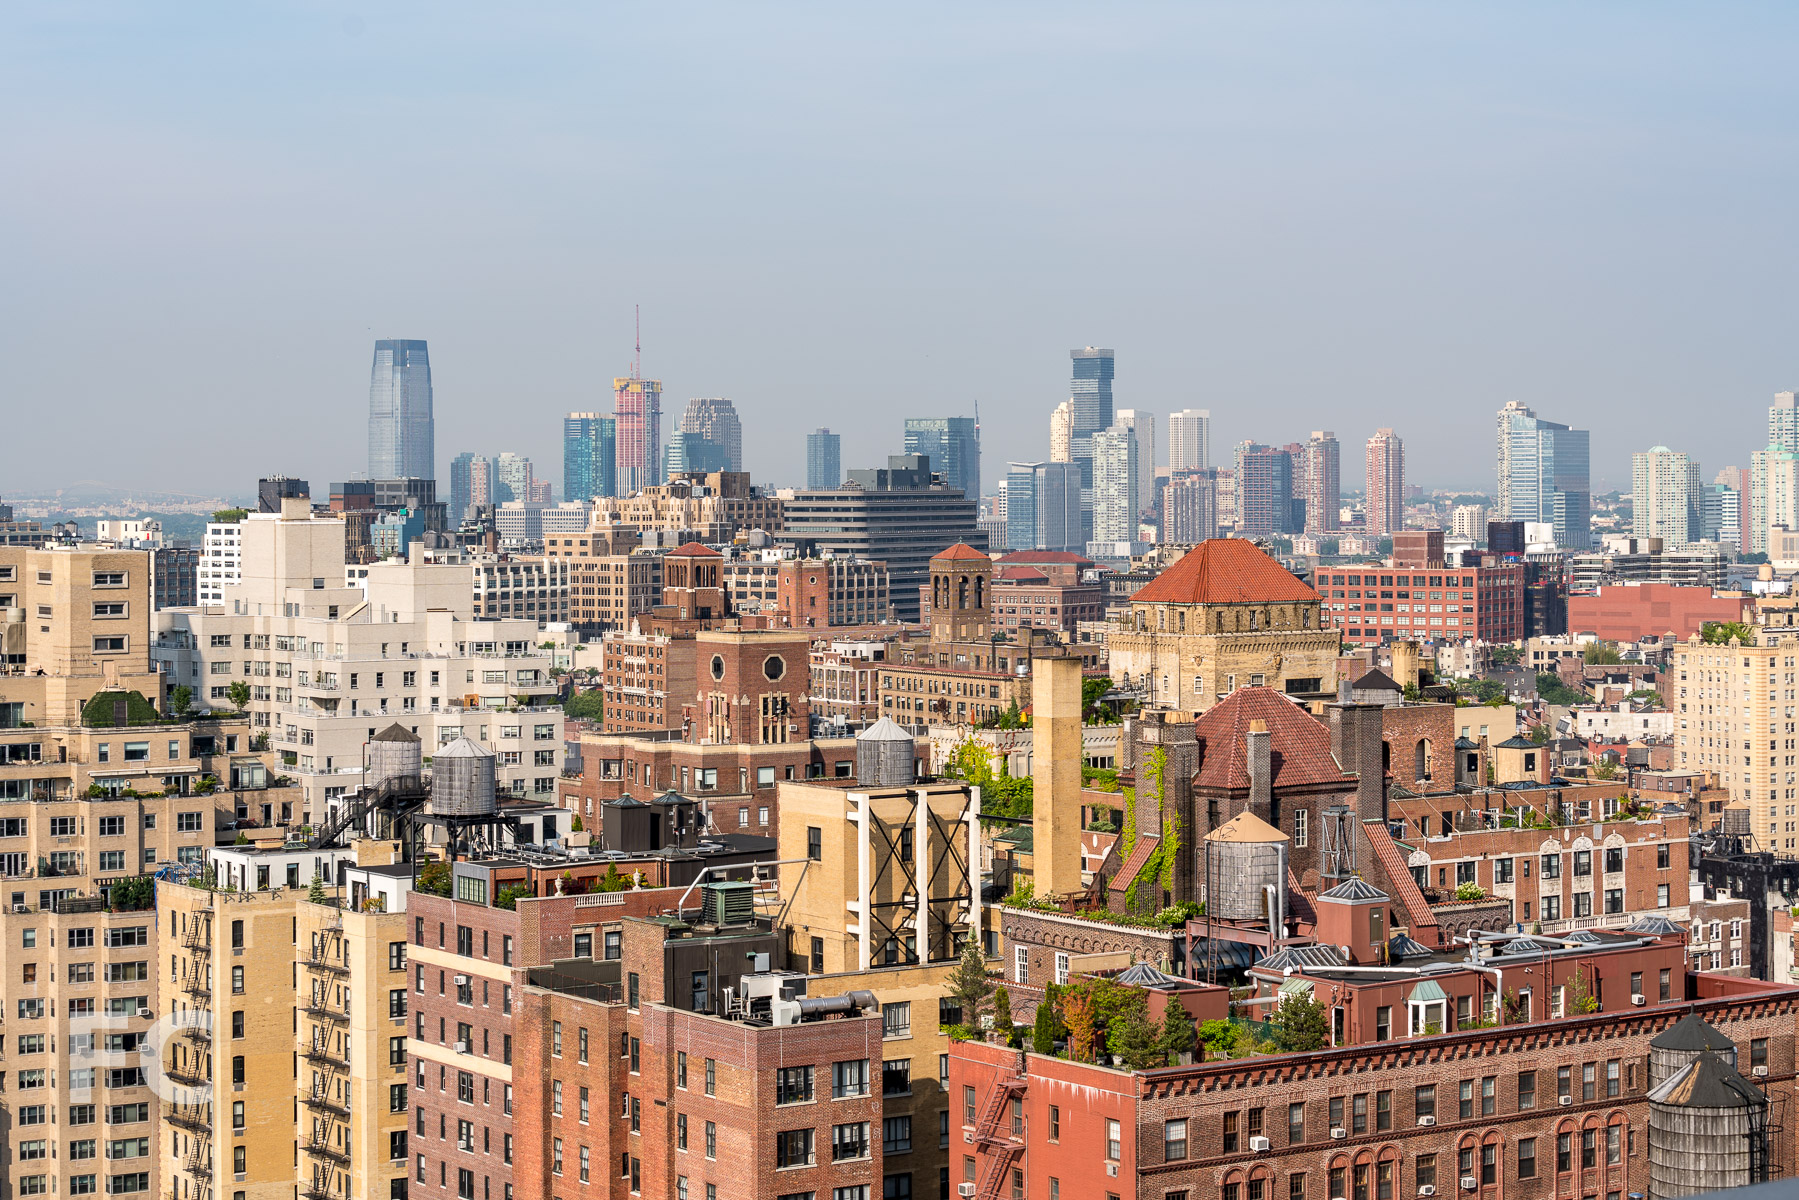 View southwest towards the West Village and Jersey City from the penthouse.